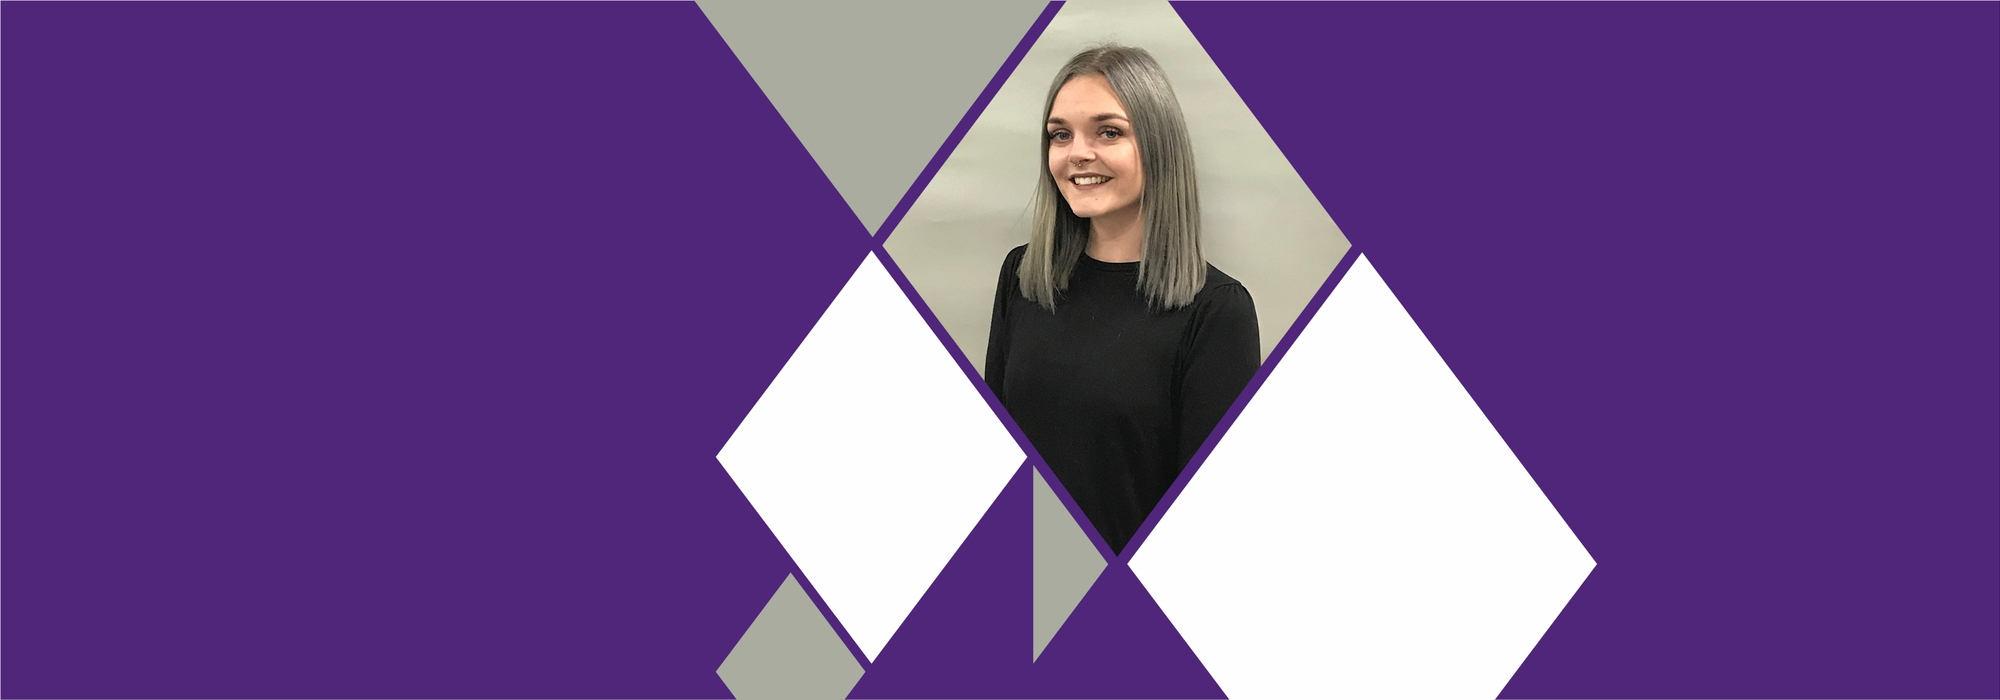 Introducing Your Specialist Helpdesk Operator Recruiter Sophie Butcher